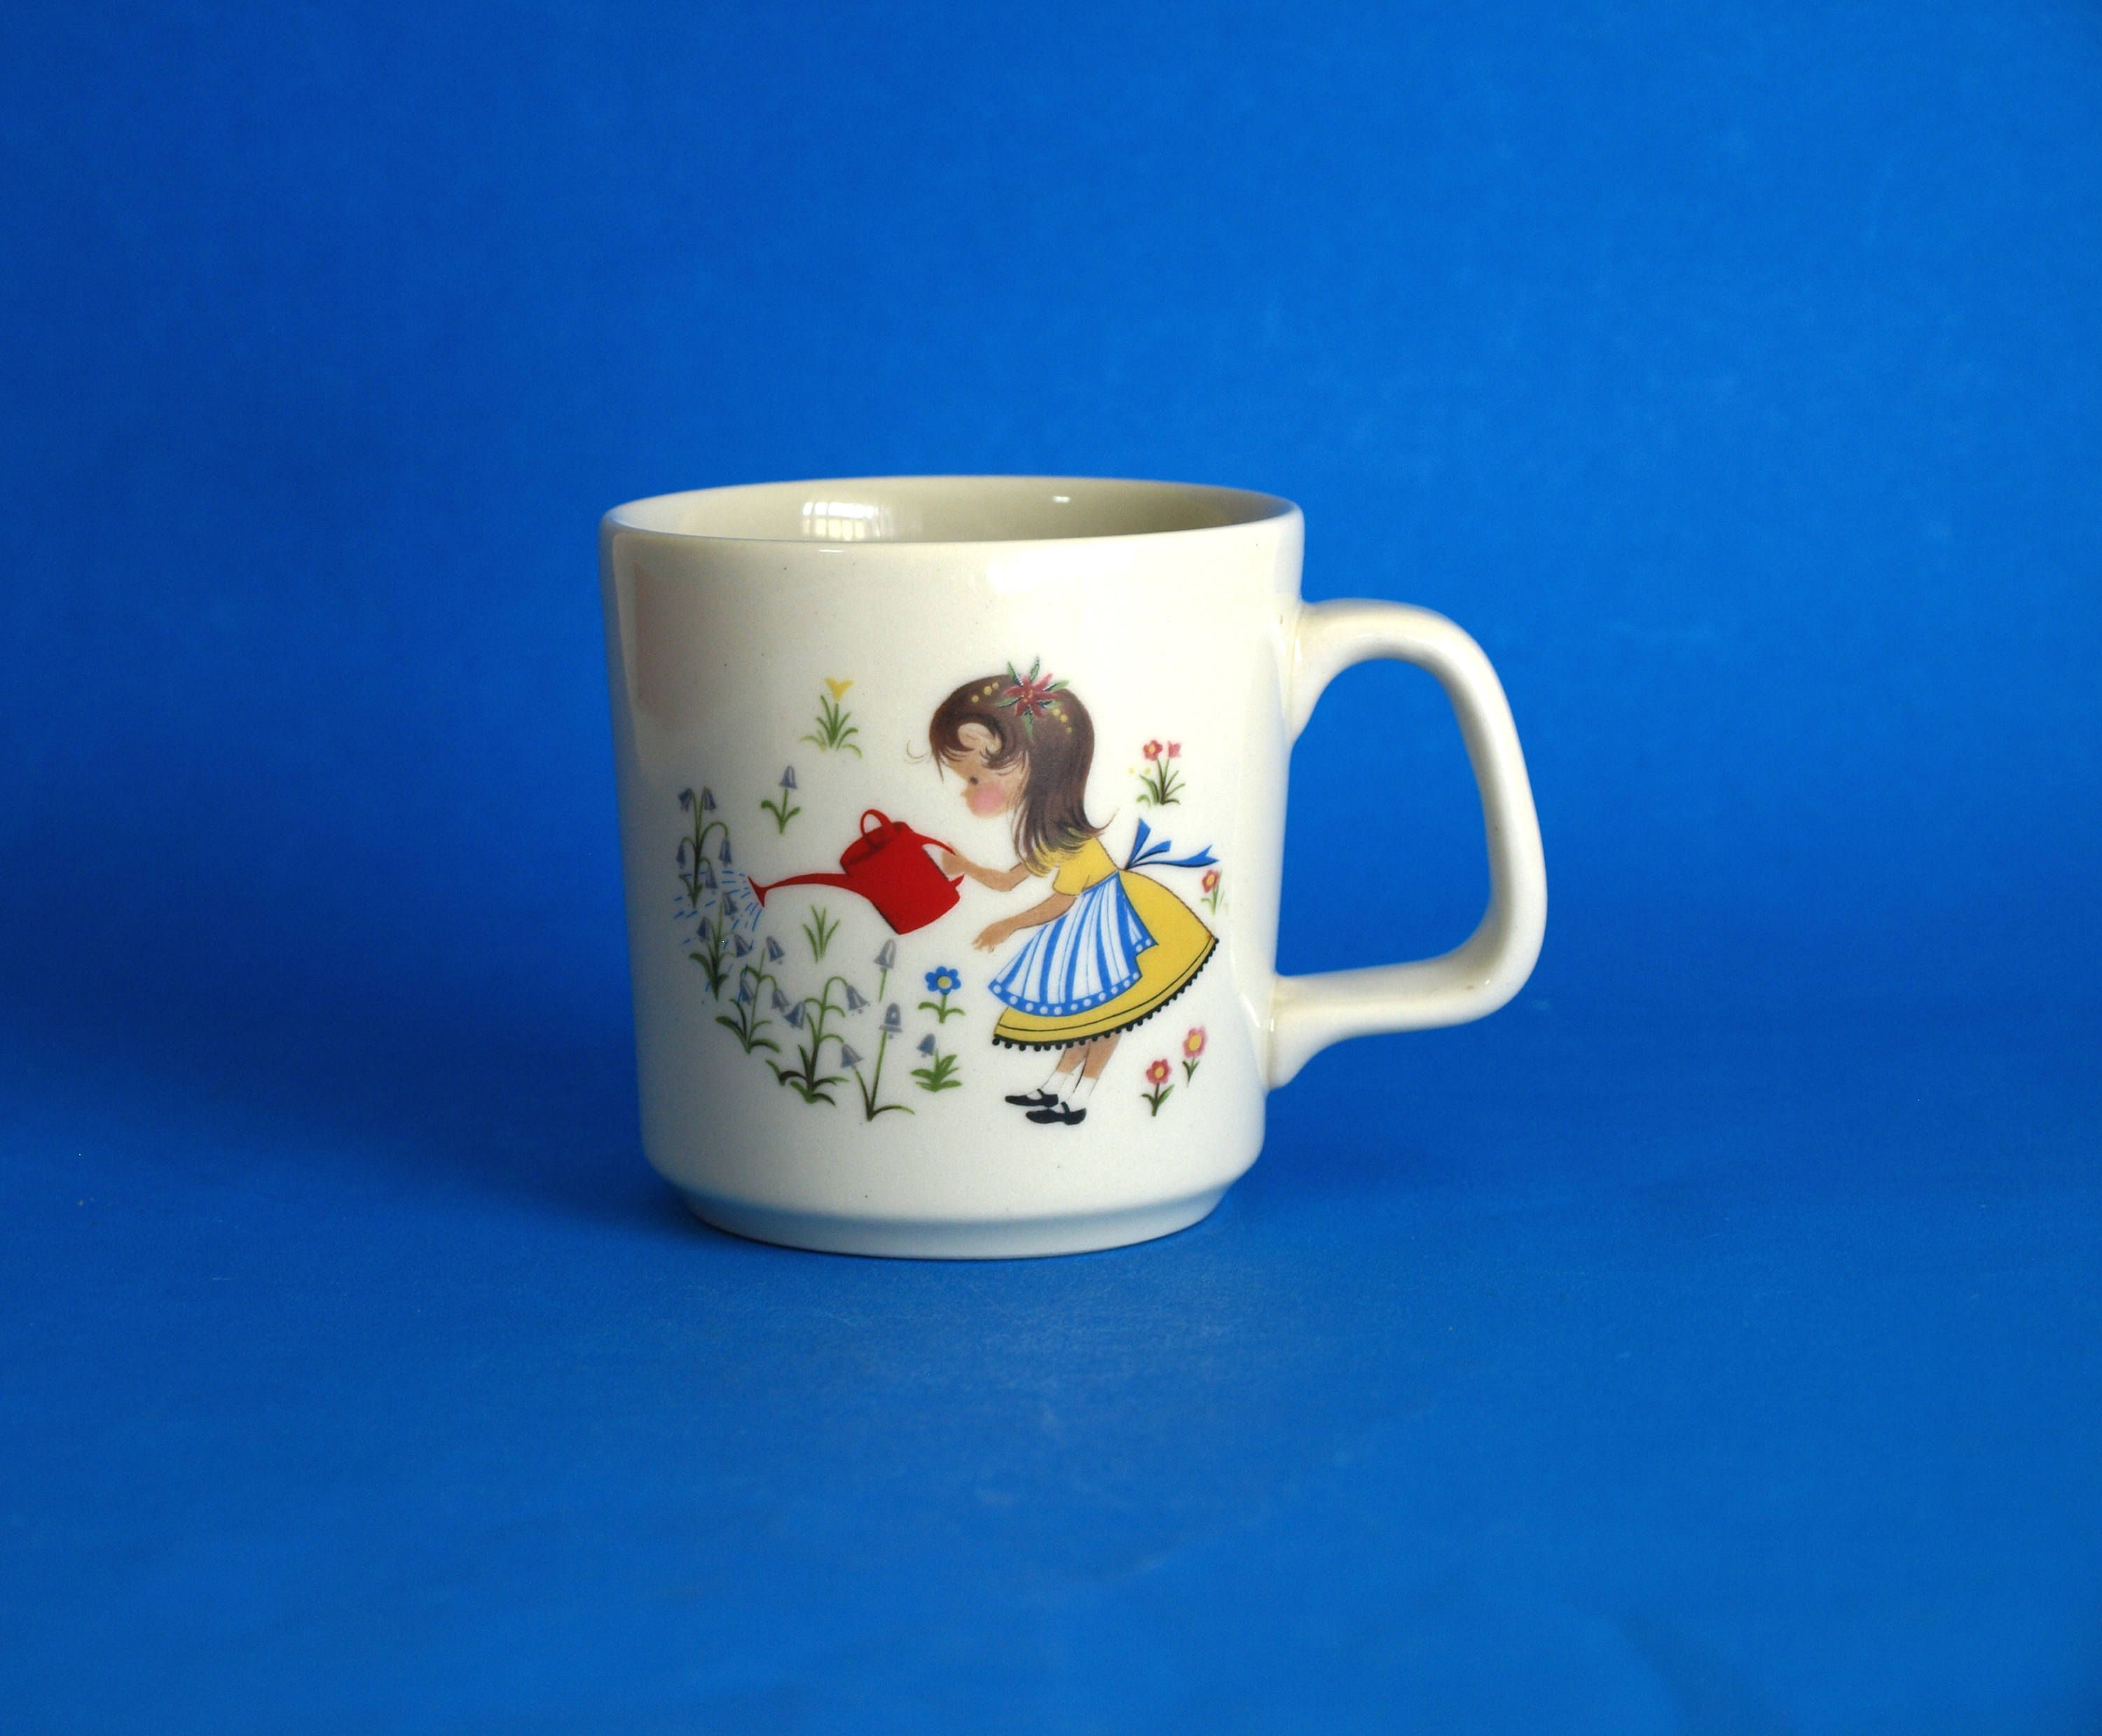 Mary Mary Quite Contrary Mug Nursery Rhymes Vintage Retro Bendigo Pottery Children S Cup Made In Australia Mint Childrens Mugs Nursery Crafts Childrens Cup